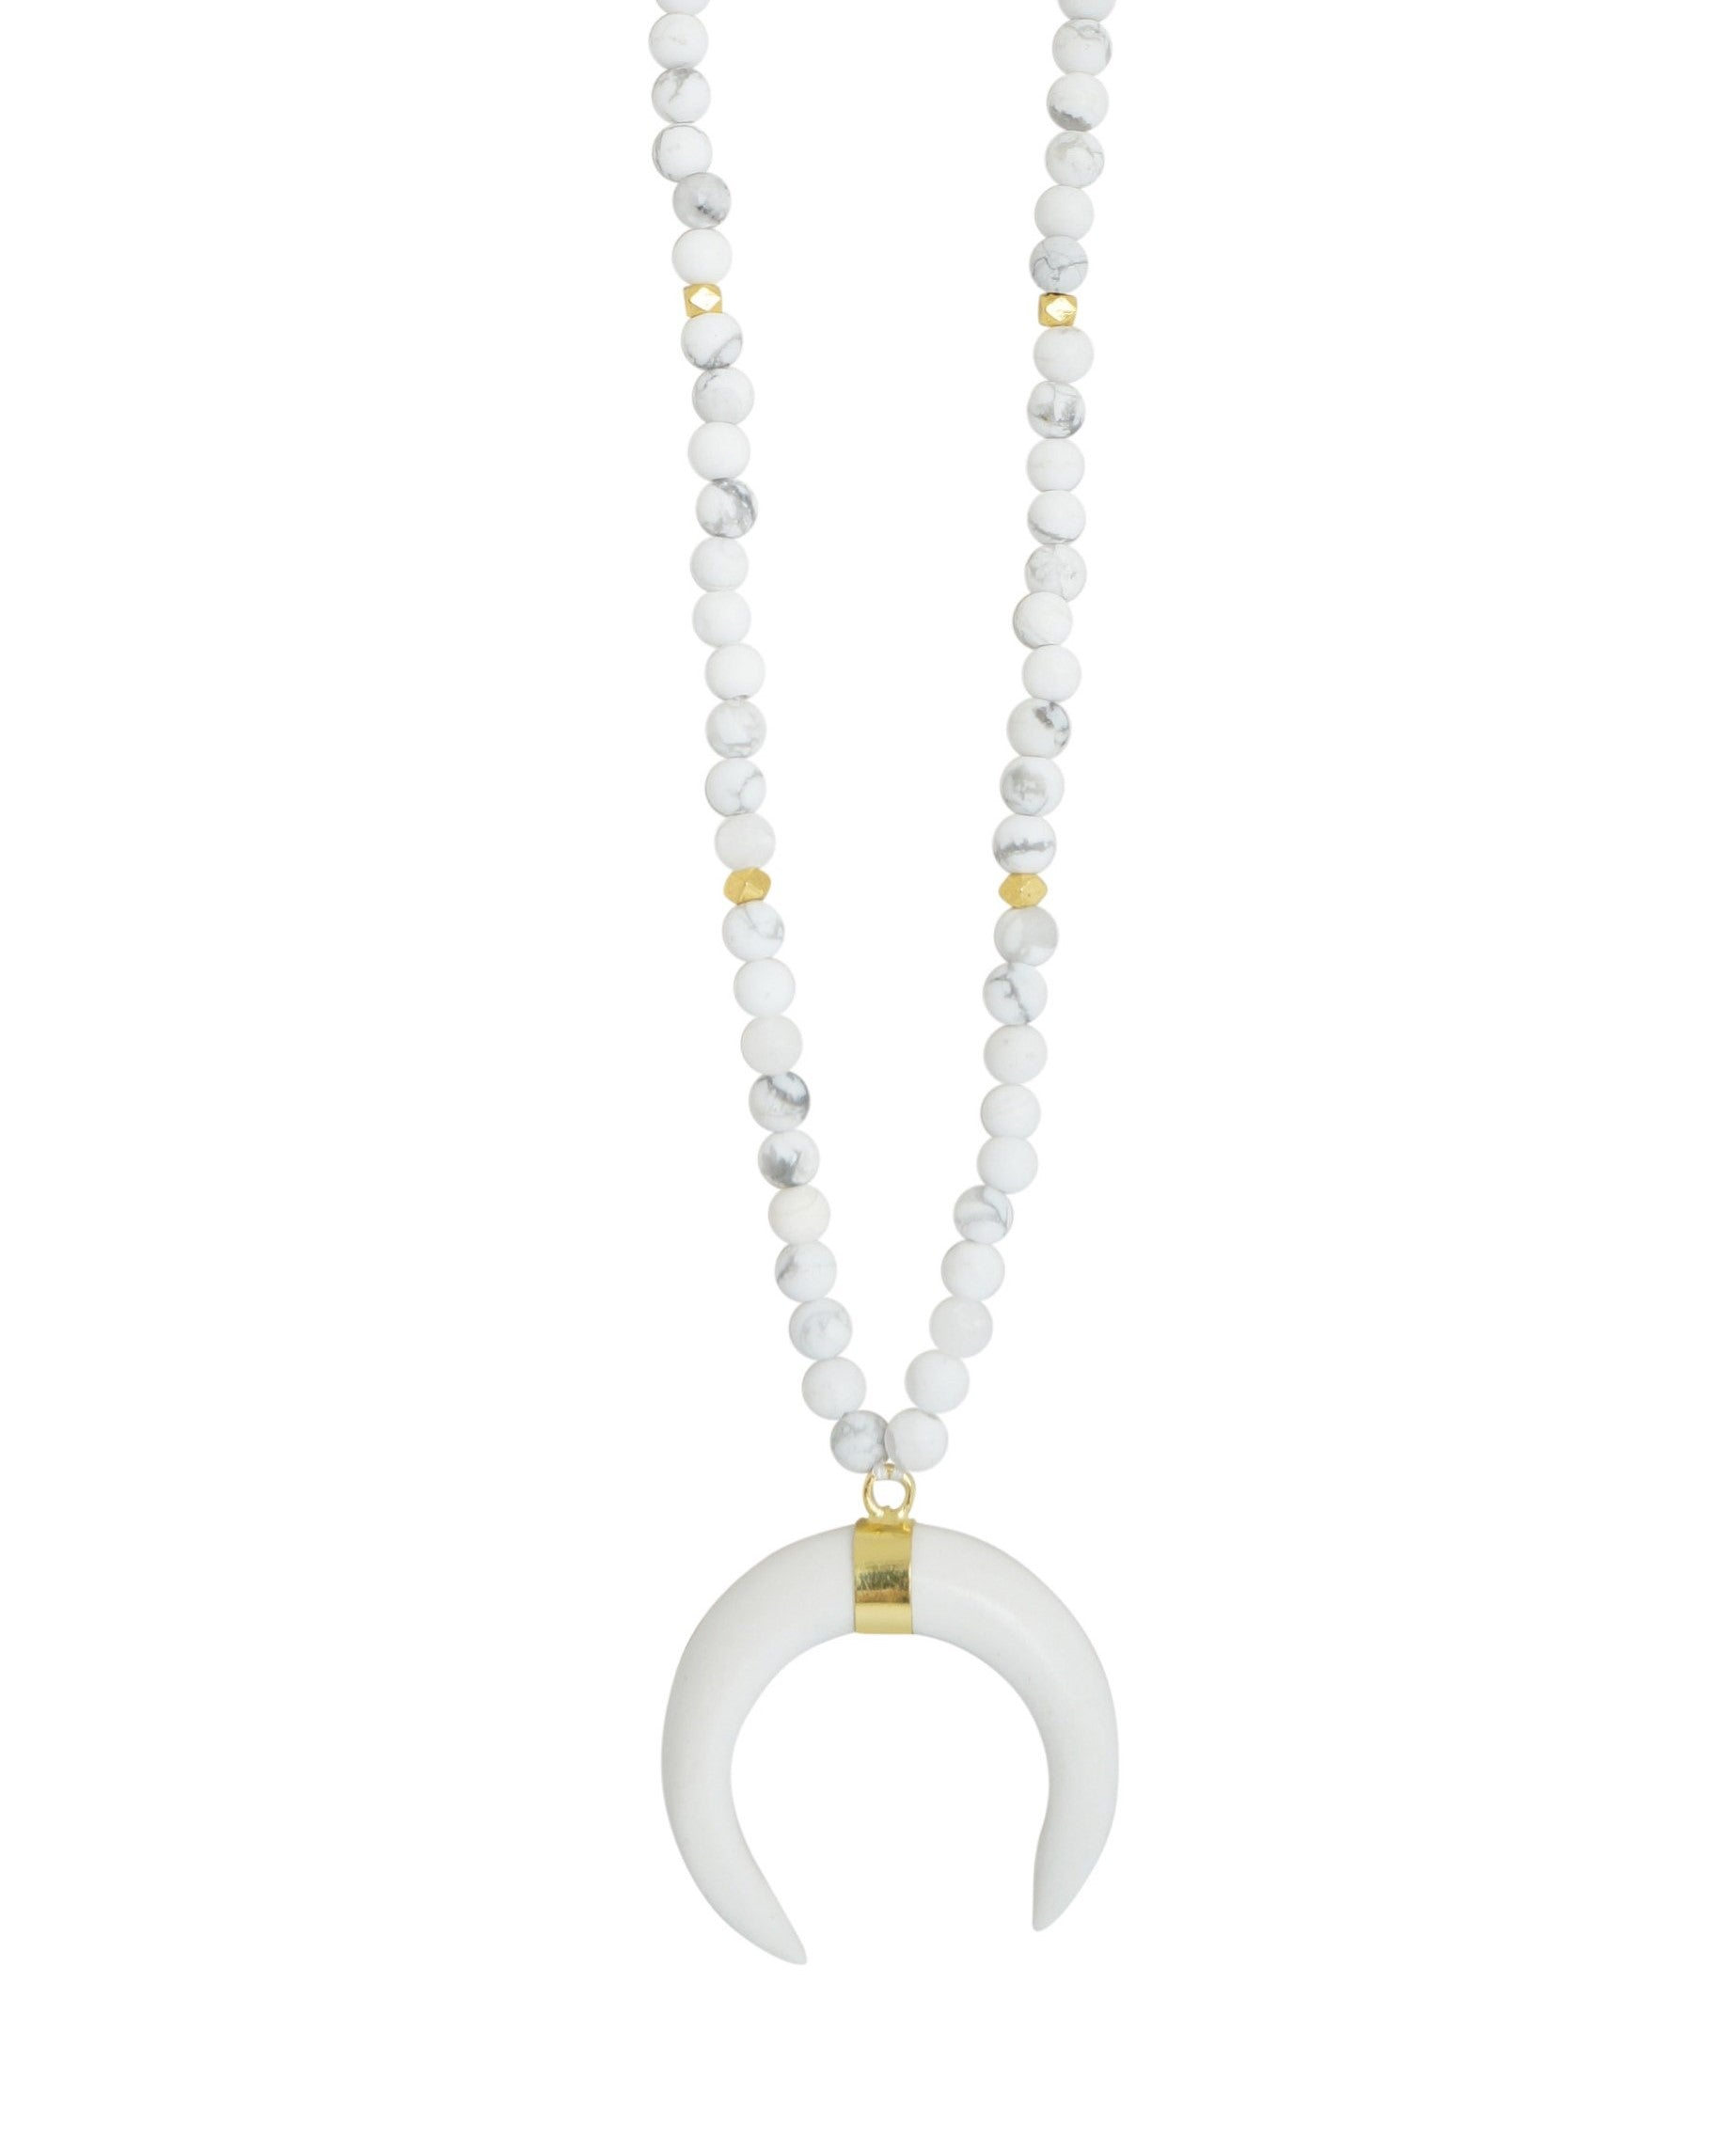 Renew Necklace - Carolyn Hearn Designs